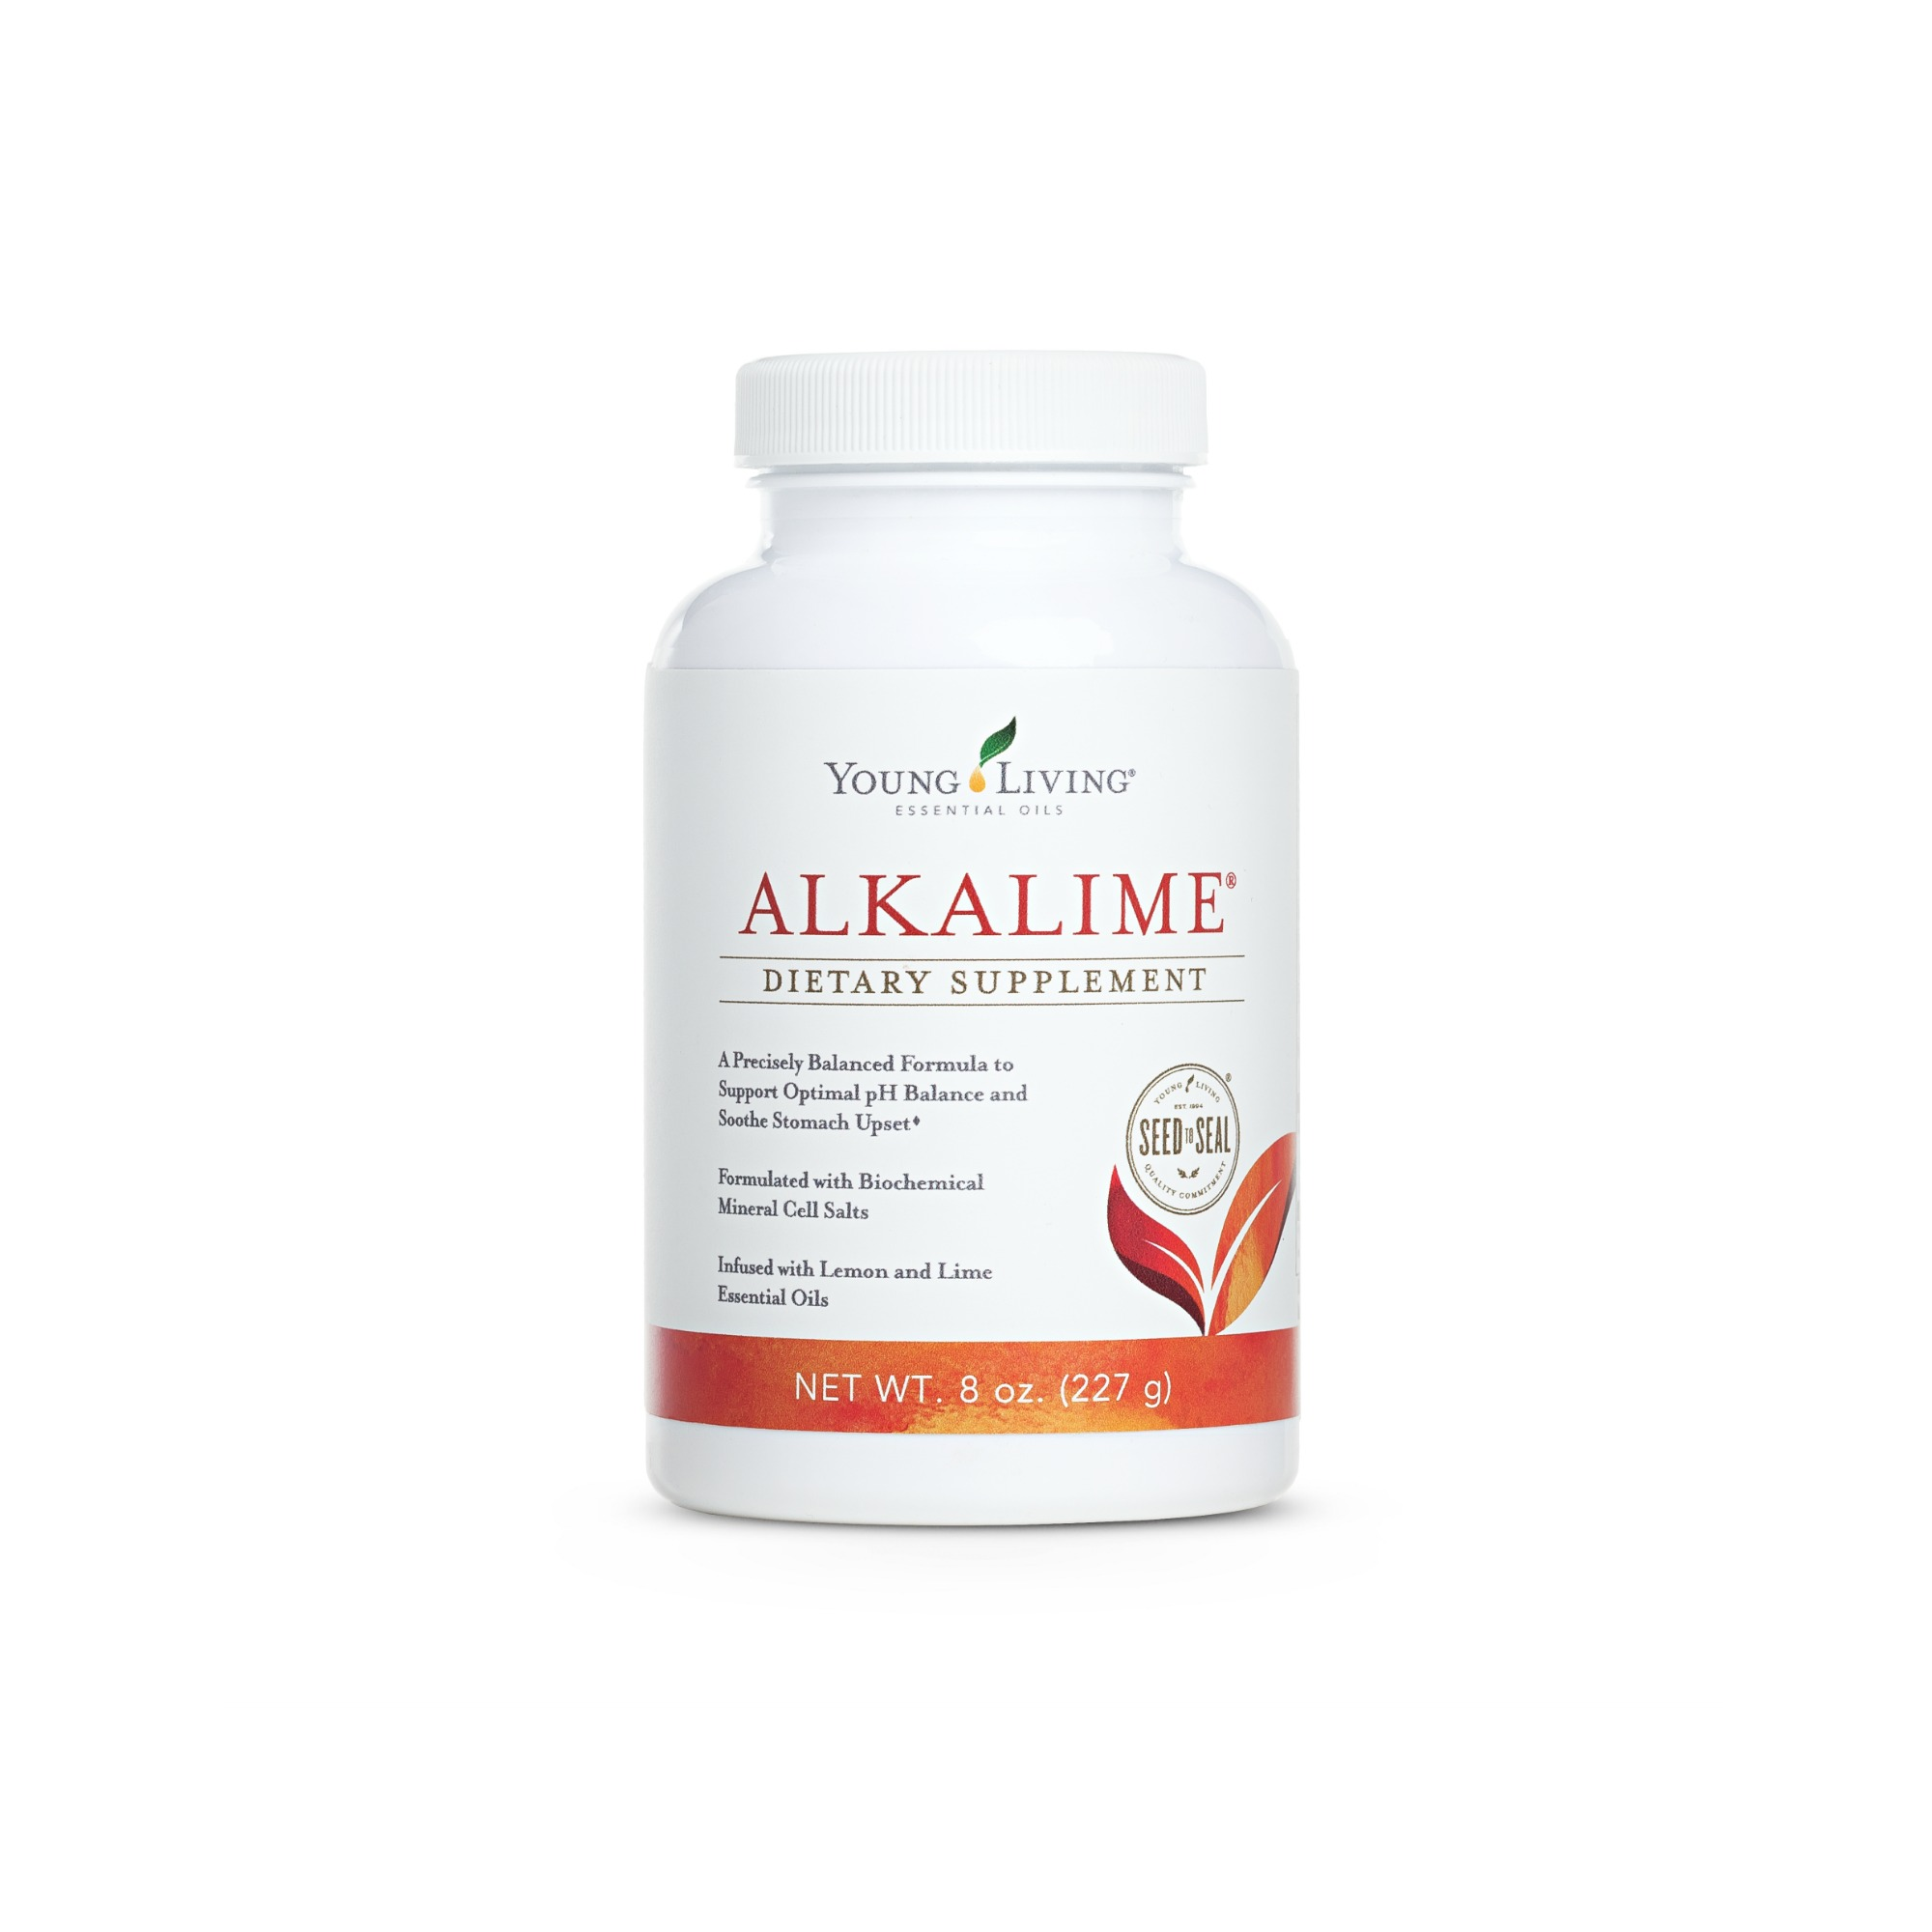 ALKALIME    AlkaLime is a precisely-balanced alkaline mineral complex formulated to neutralize acidity and maintain desirable pH levels in the body. Infused with lemon and lime essential oils and organic whole lemon powder, AlkaLime also features enhanced effervescence and biochemic cell salts for increased effectiveness. A balanced pH is thought to play an important role in maintaining overall health, a steady immune system, and vigor. This is popularly used as a supplement to help soothe the occasional upset stomach.   Click here   to learn more about this product.